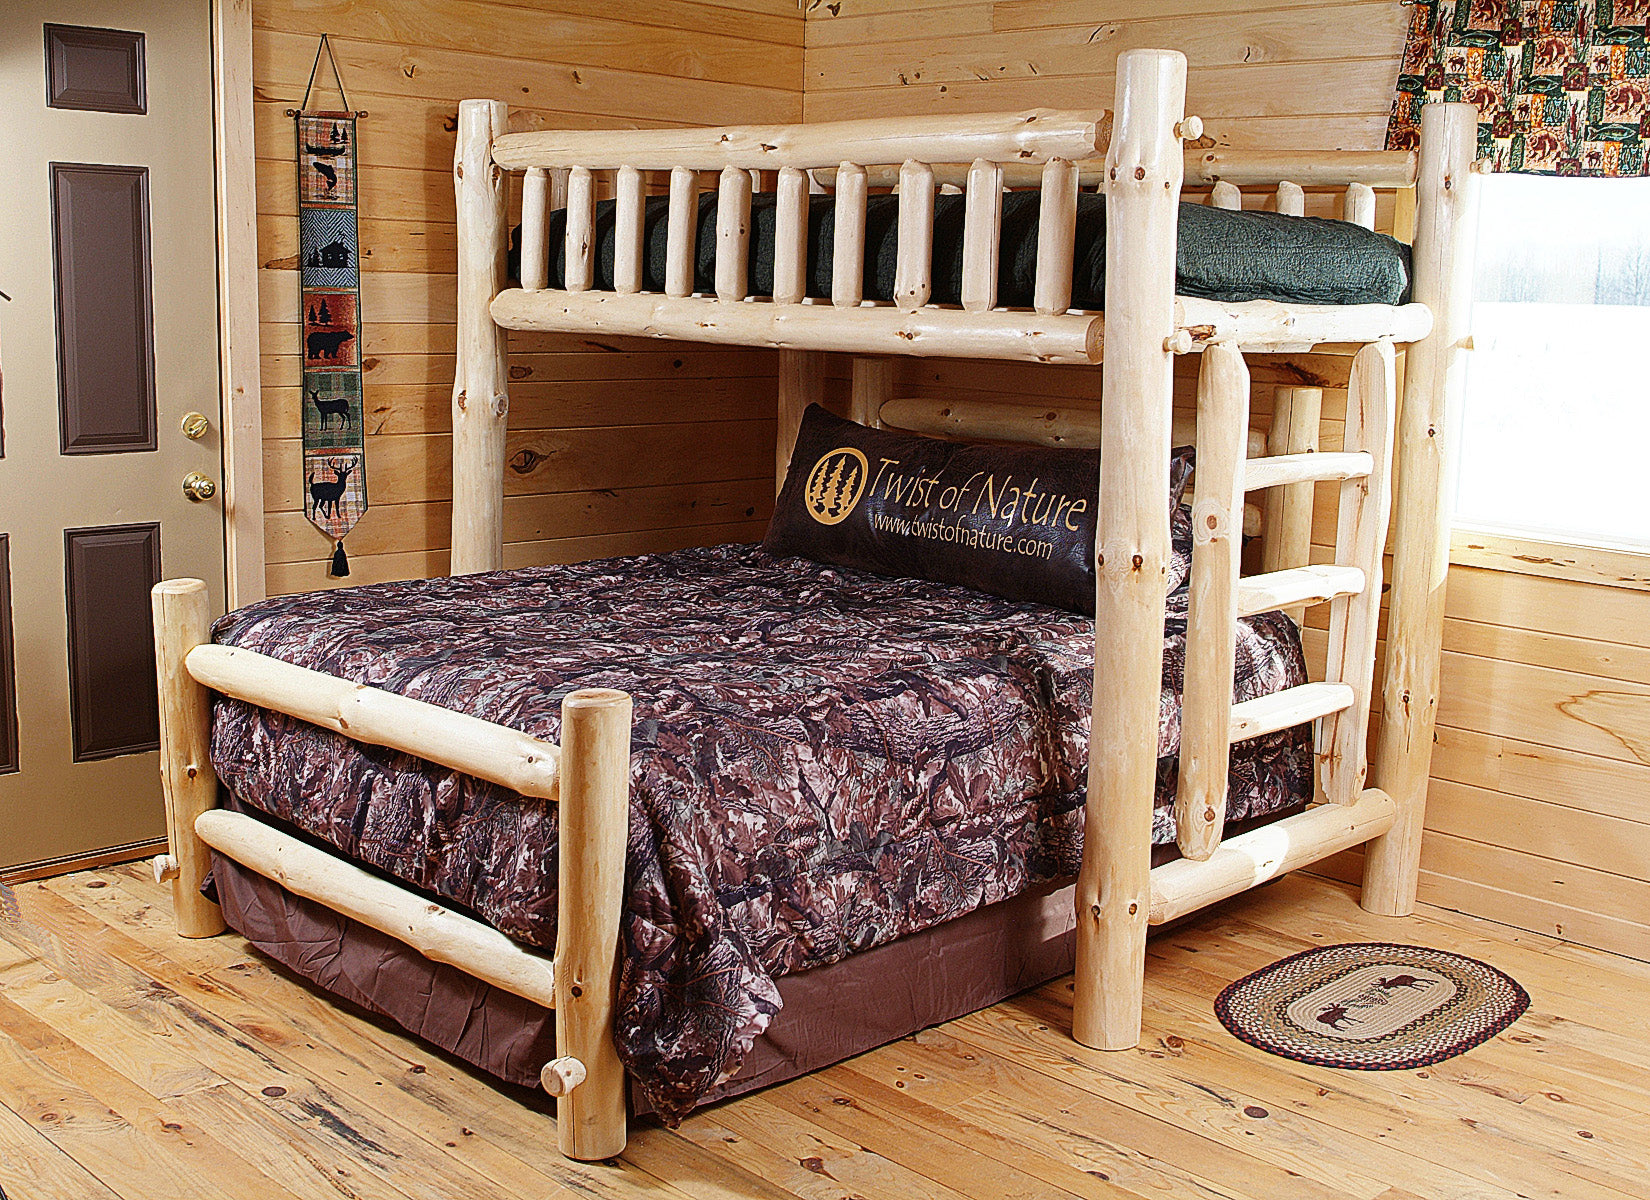 Picture of: Space Saver Loft Bed Frame Kit Twistofnature